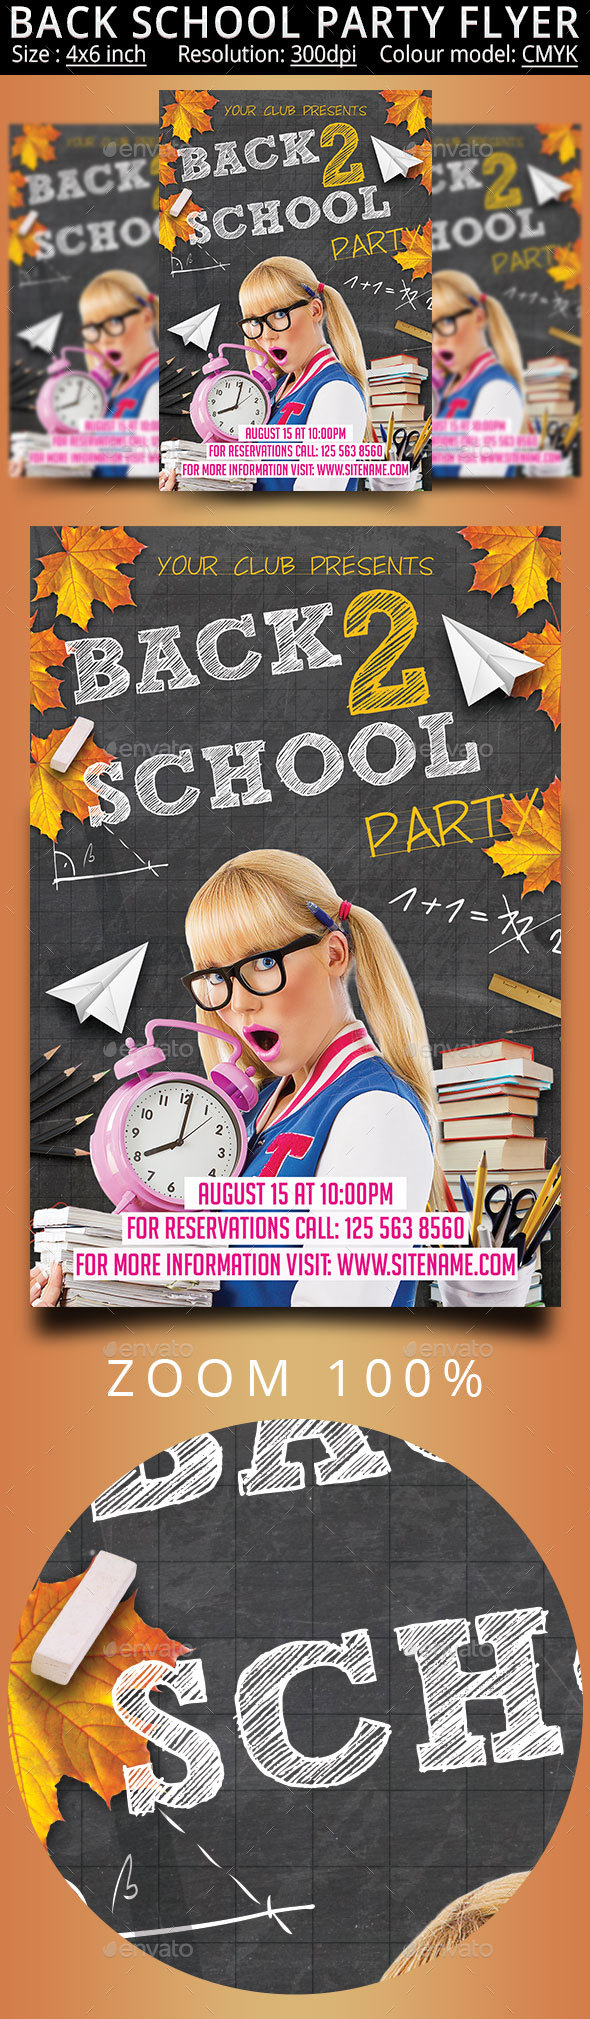 Back School Party Flyer - Events Flyers